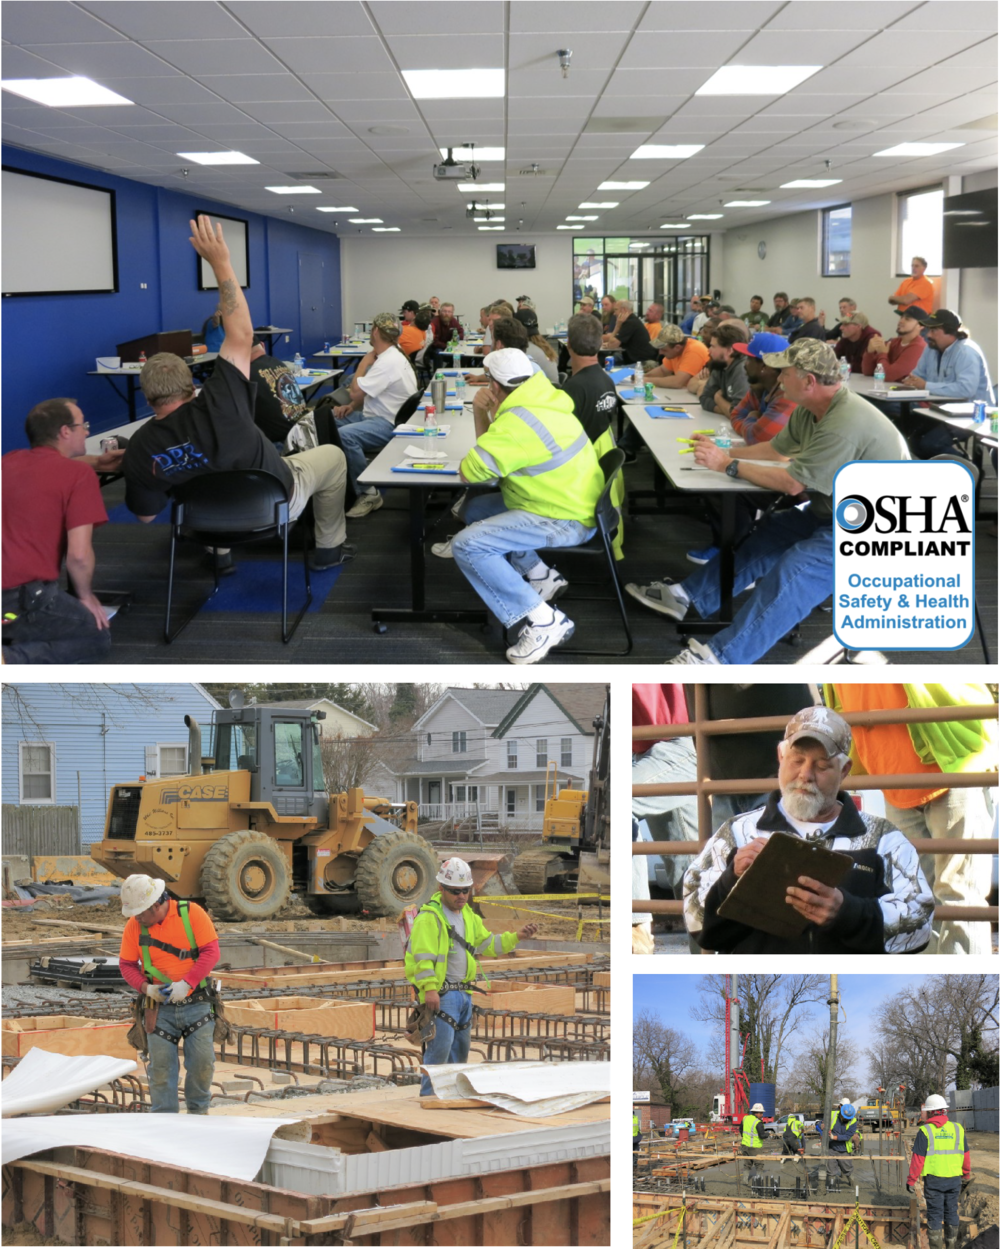 Our Commitment To Safety - Shaw Construction Corporation has adopted extensive policies, procedures, and incentives that are all designed to provide a safe and healthy work environment for all employees, subcontractors, and customers. We believe a safe and healthy work environment is top priority, and we develop site-specific safety procedures that meet the goal of accident free work sites. We employ and offer the following as a minimum to our safety and health program:• Safety professionals to initiate and monitor safe work practices.•A detailed safety manual with employee training guidelines specified in each program.•All foremen have completed the OSHA 30-hour construction safety training course.•Daily pre-task safety planning meetings.•Weekly toolbox safety talks on all jobsites.•Regular jobsite safety inspections.•A 100% drug-free workplace program.Through proven methods and employee training, we have and maintain one of the lowest EMR ratings, and have some of the lowest recordable injury frequency rates in our industry.